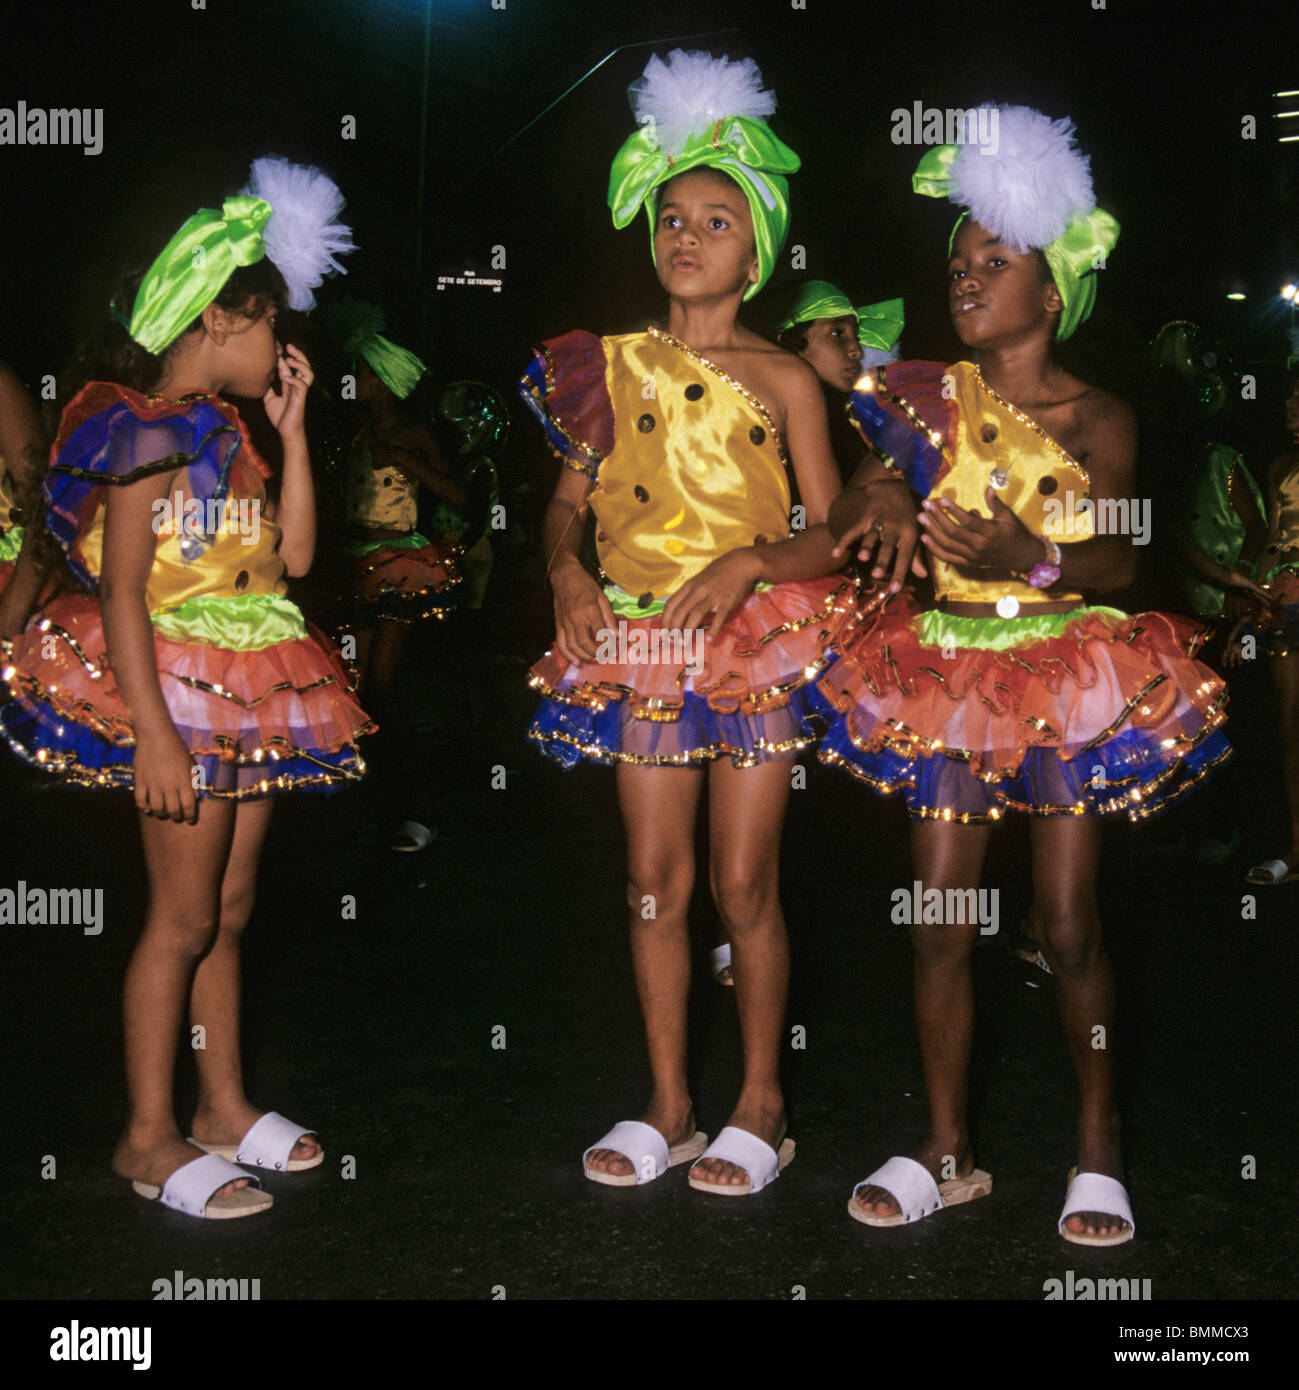 young girls with carnival costumes at night - Rio de Janeiro